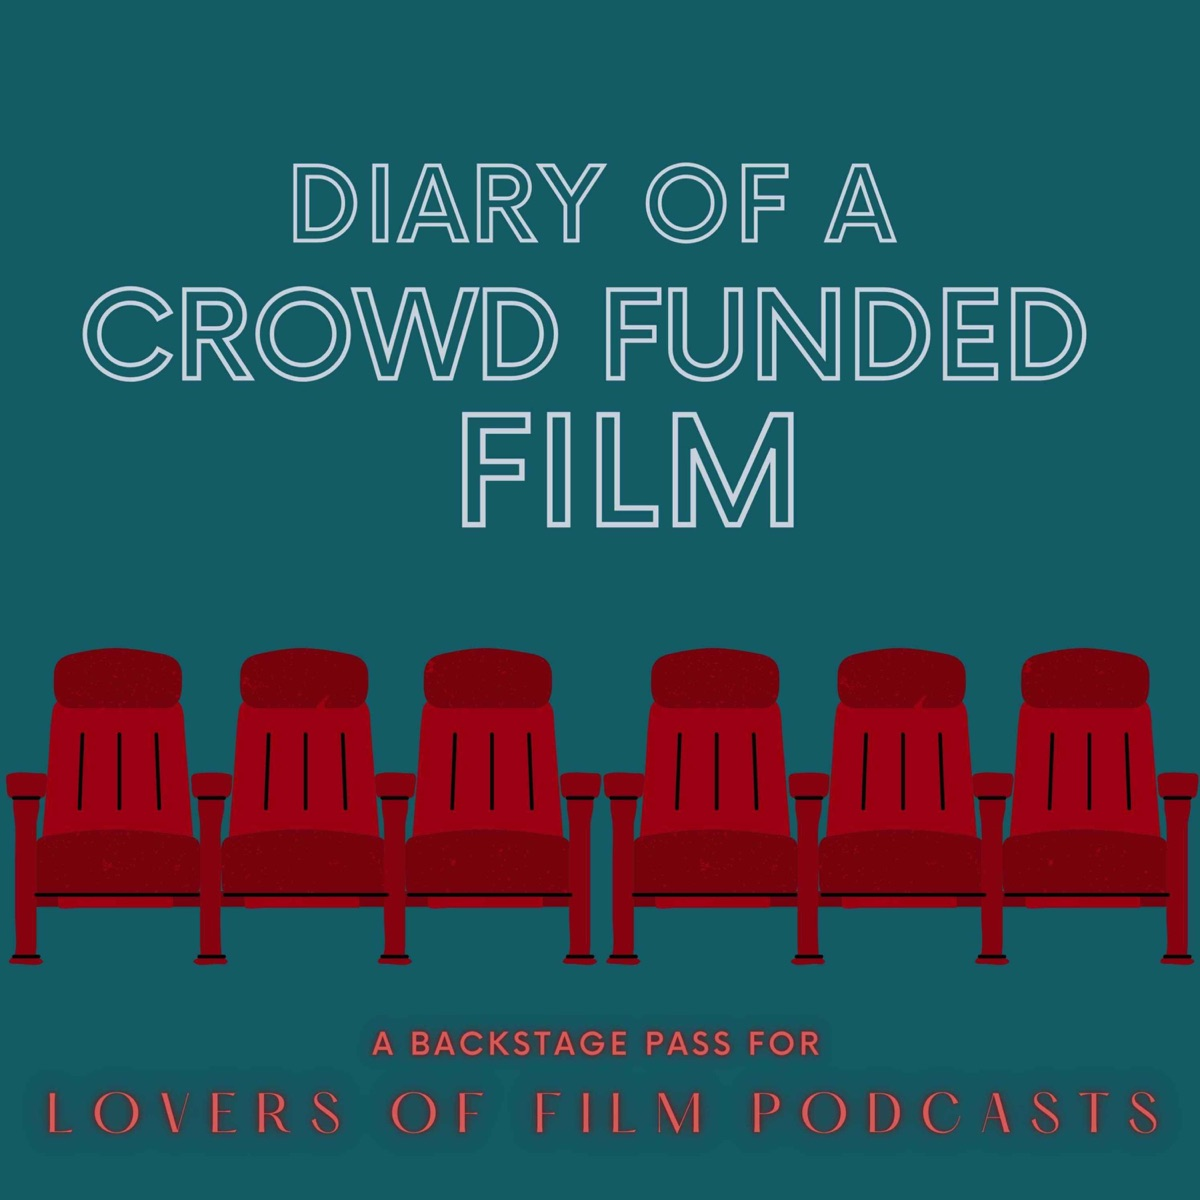 Diary of a Crowd Funded Film